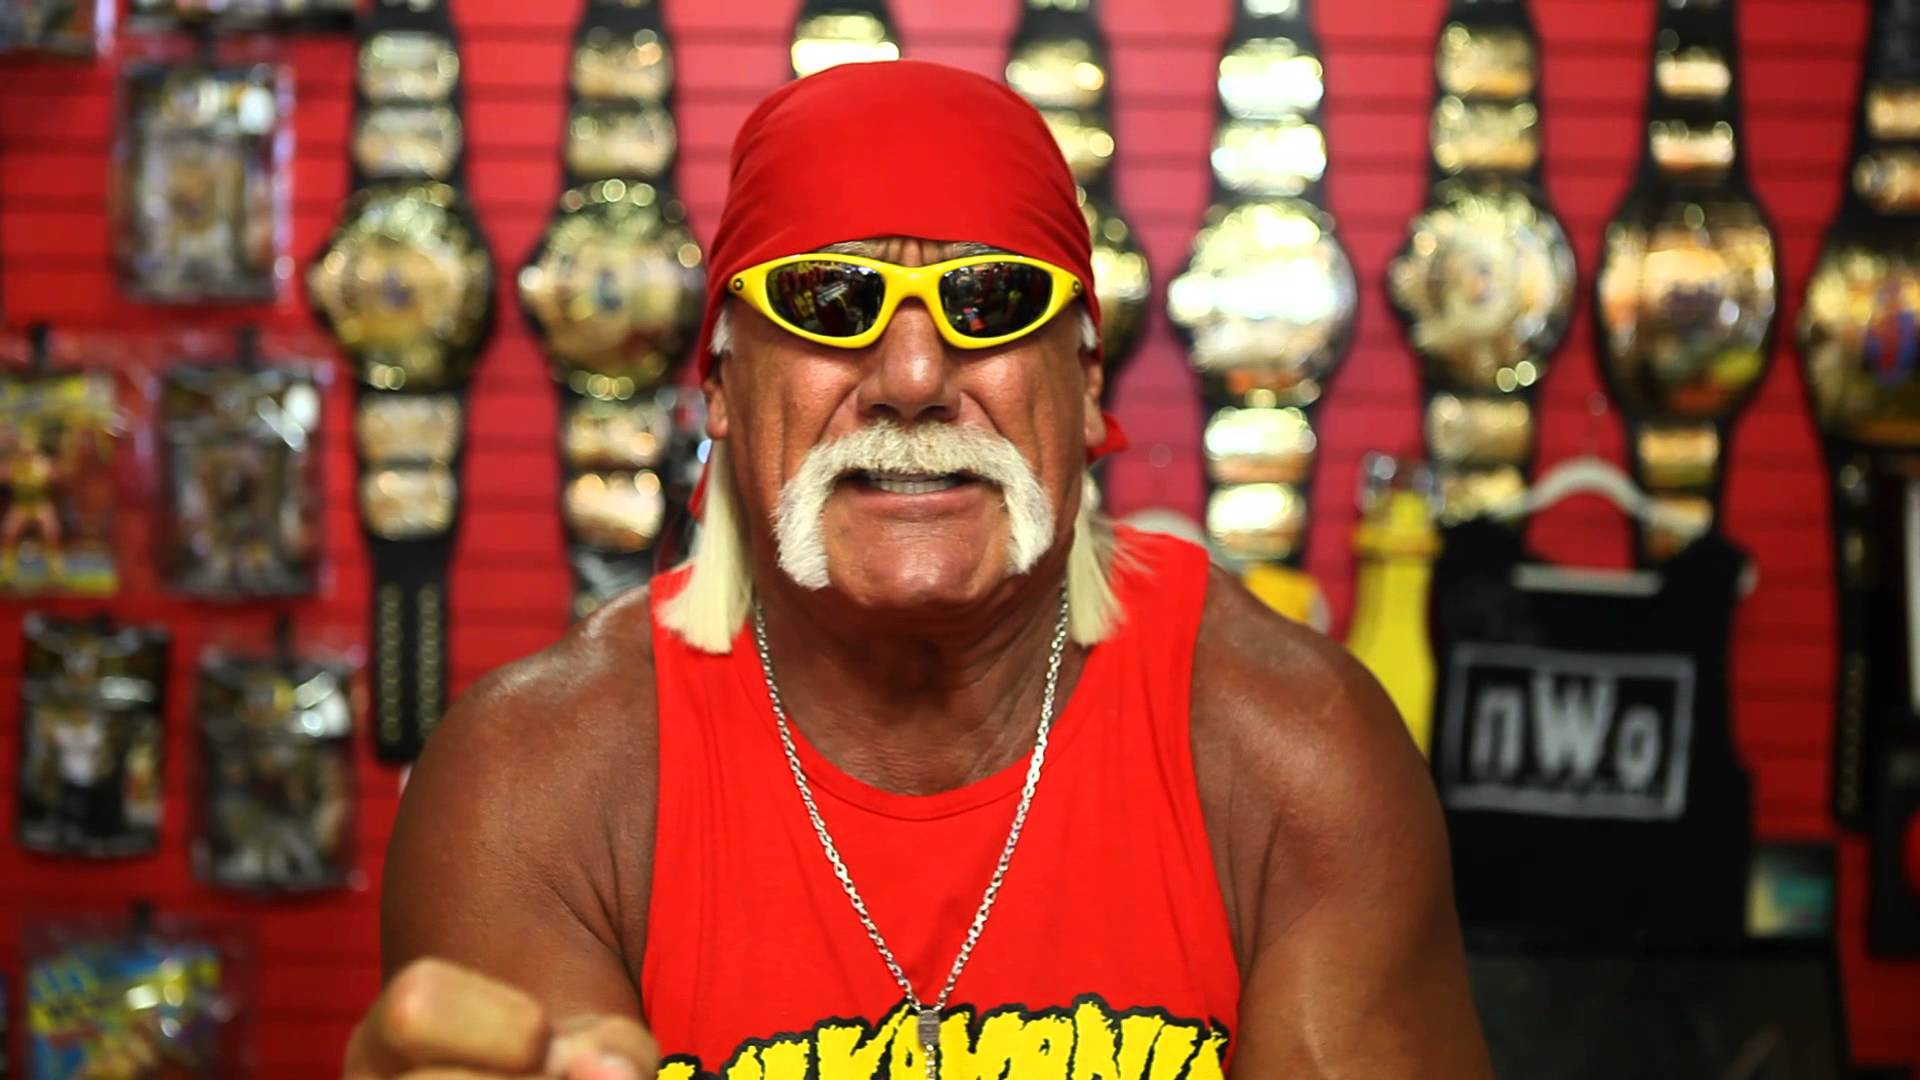 Wwe Hulk Hogan Wwe Terminates Contract With Hulk Hogan Over Racist Remarks